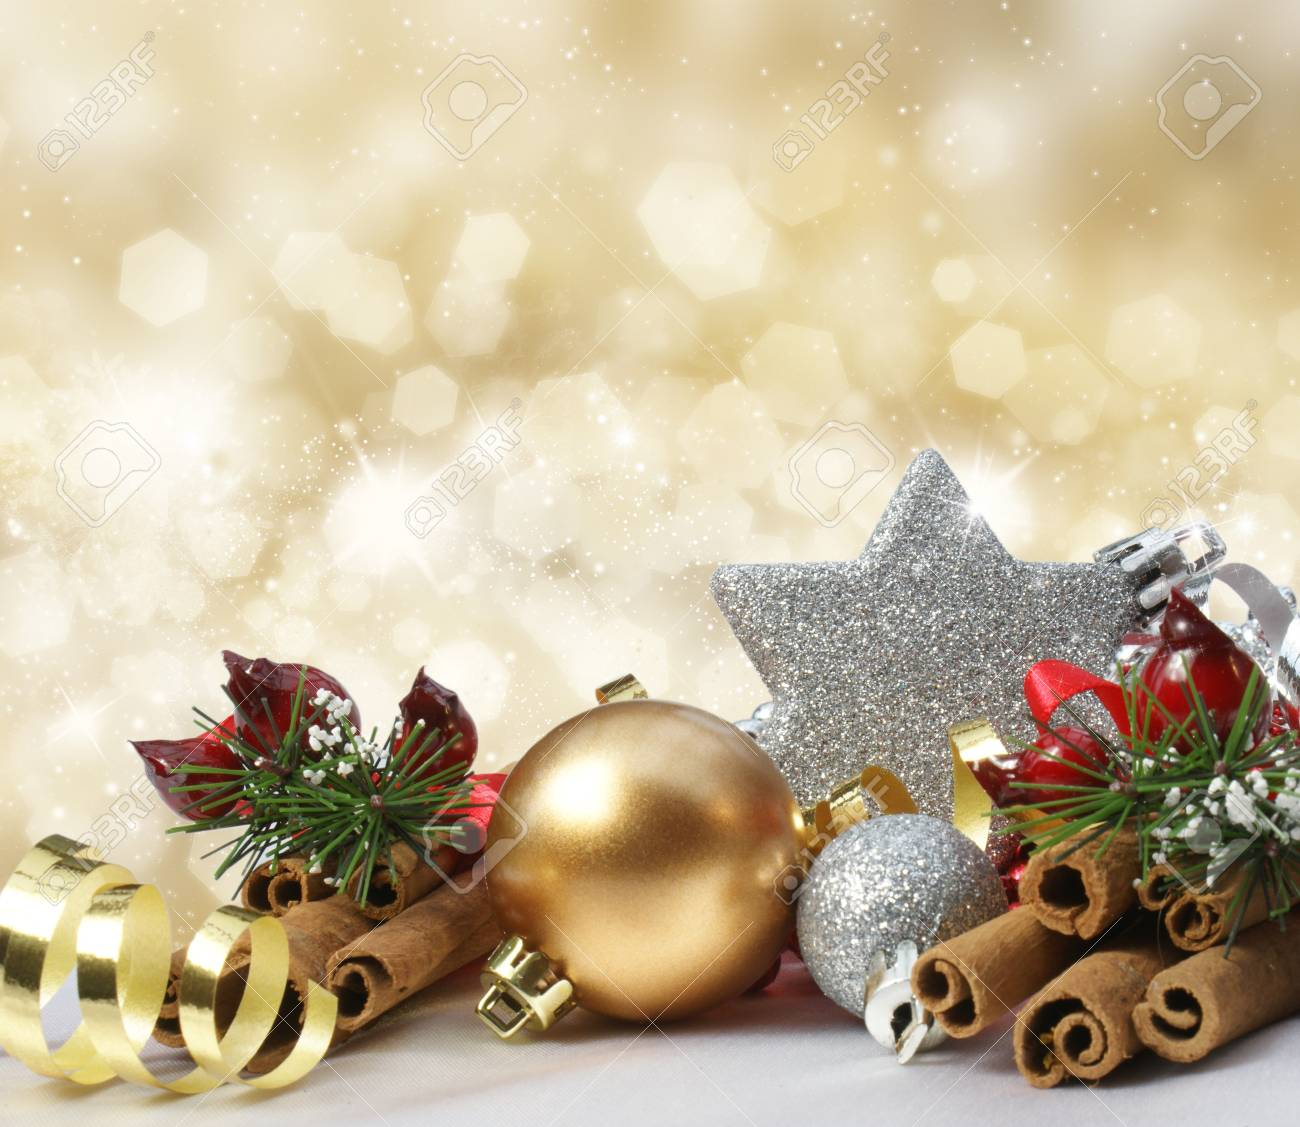 Christmas decorations on a glittery gold background Stock Photo - 16446590